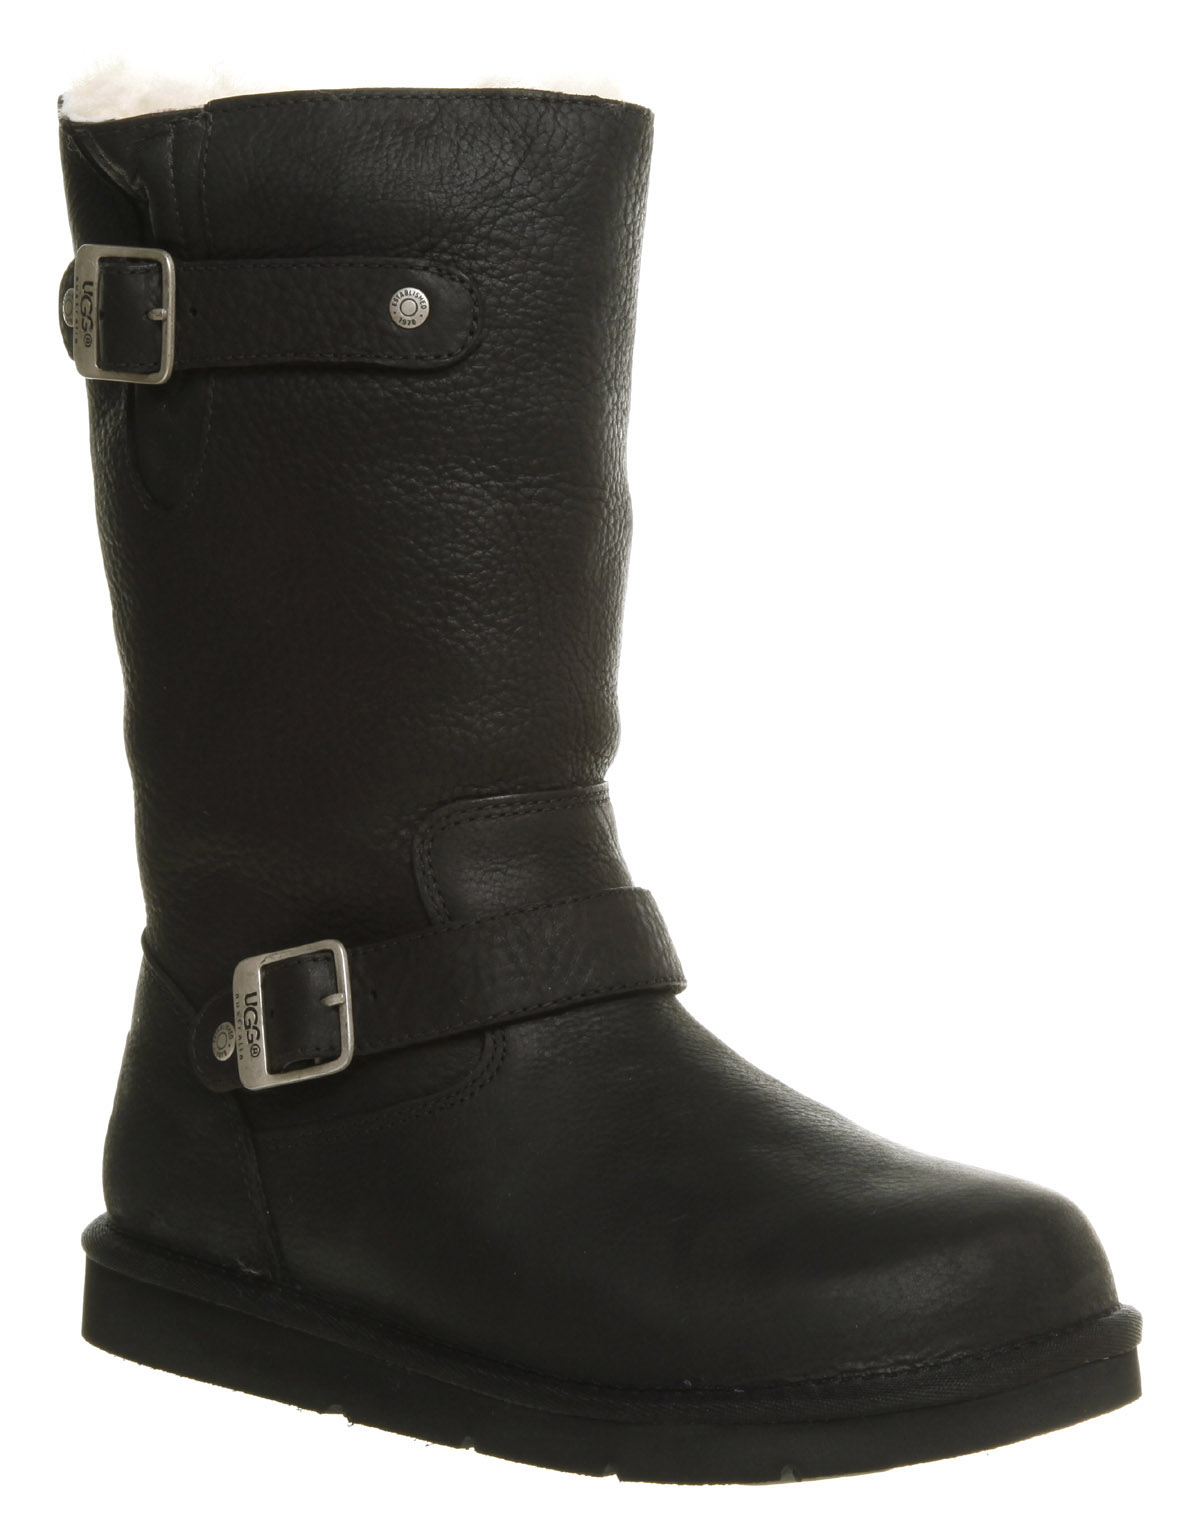 black leather uggs america s best lifechangers